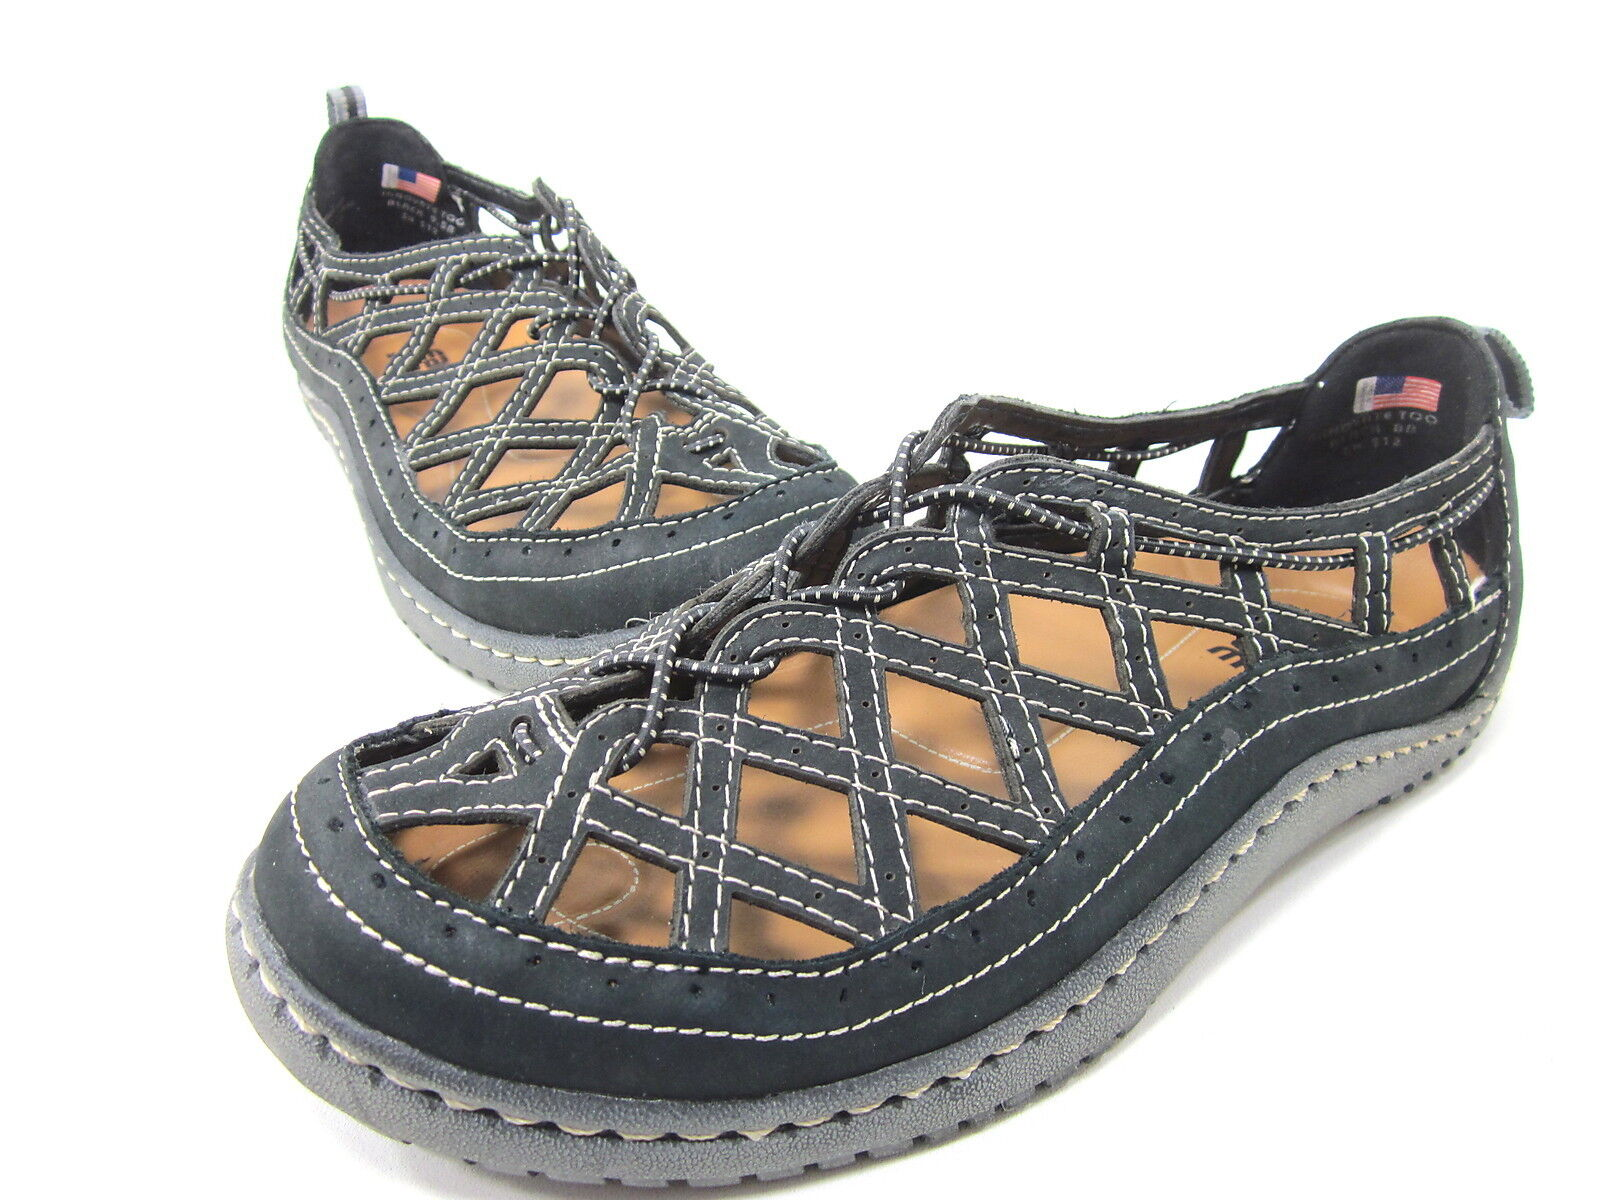 KALSO EARTH INNOVATE TOO SANDAL WOMENS BLACK, 8 SZ LEFT, 9.5 SZ RIGHT MISMATCHED